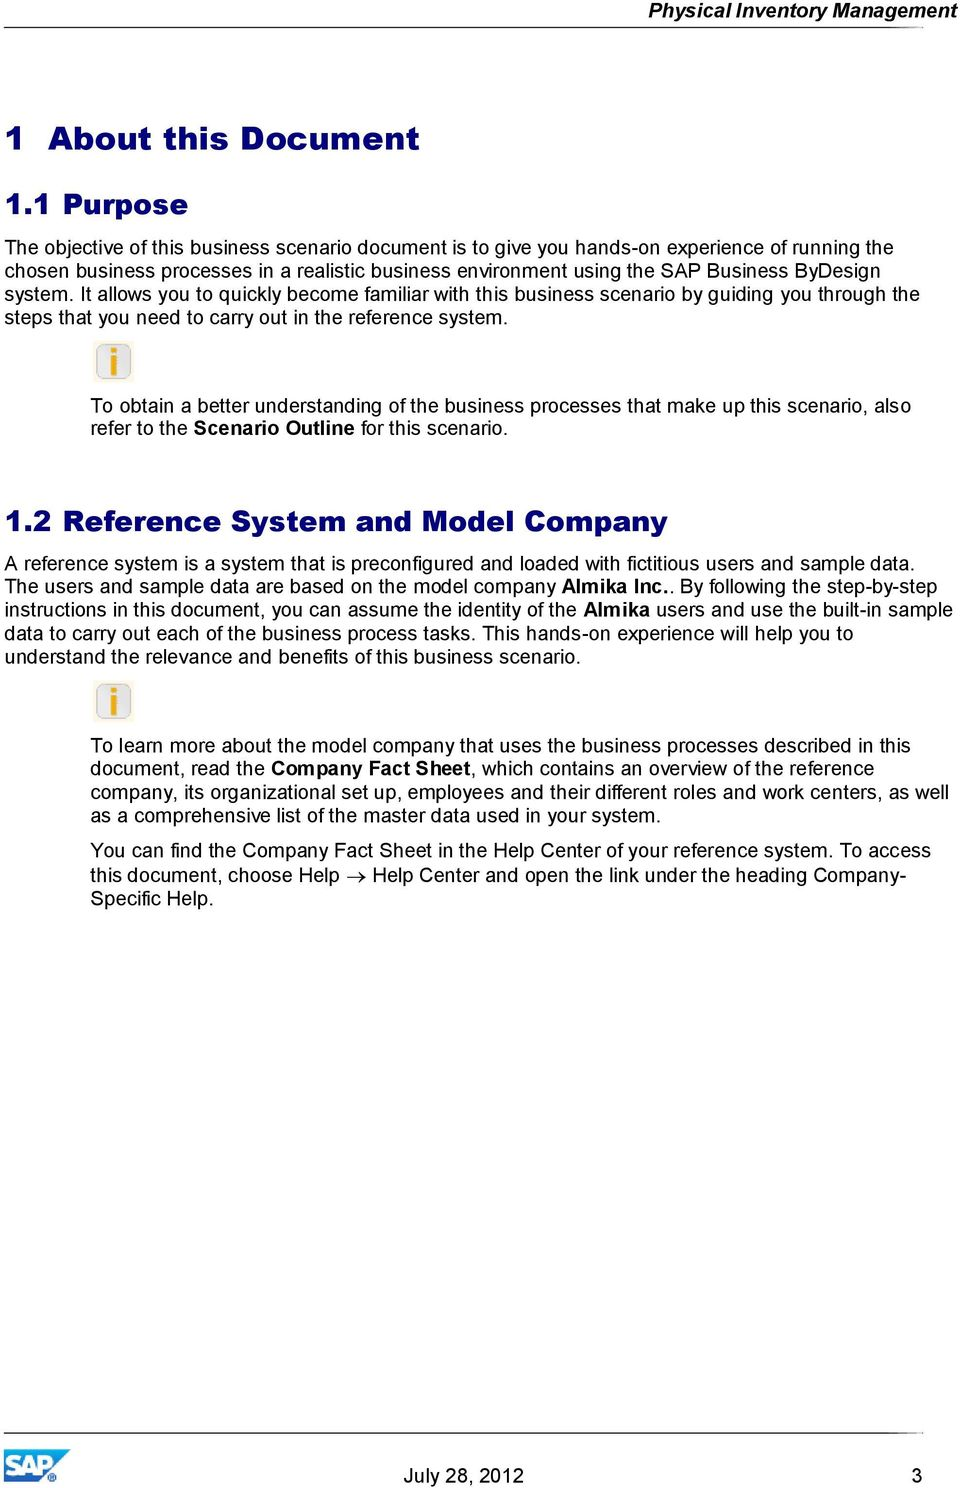 Physical Inventory Management  SAP Business ByDesign - PDF